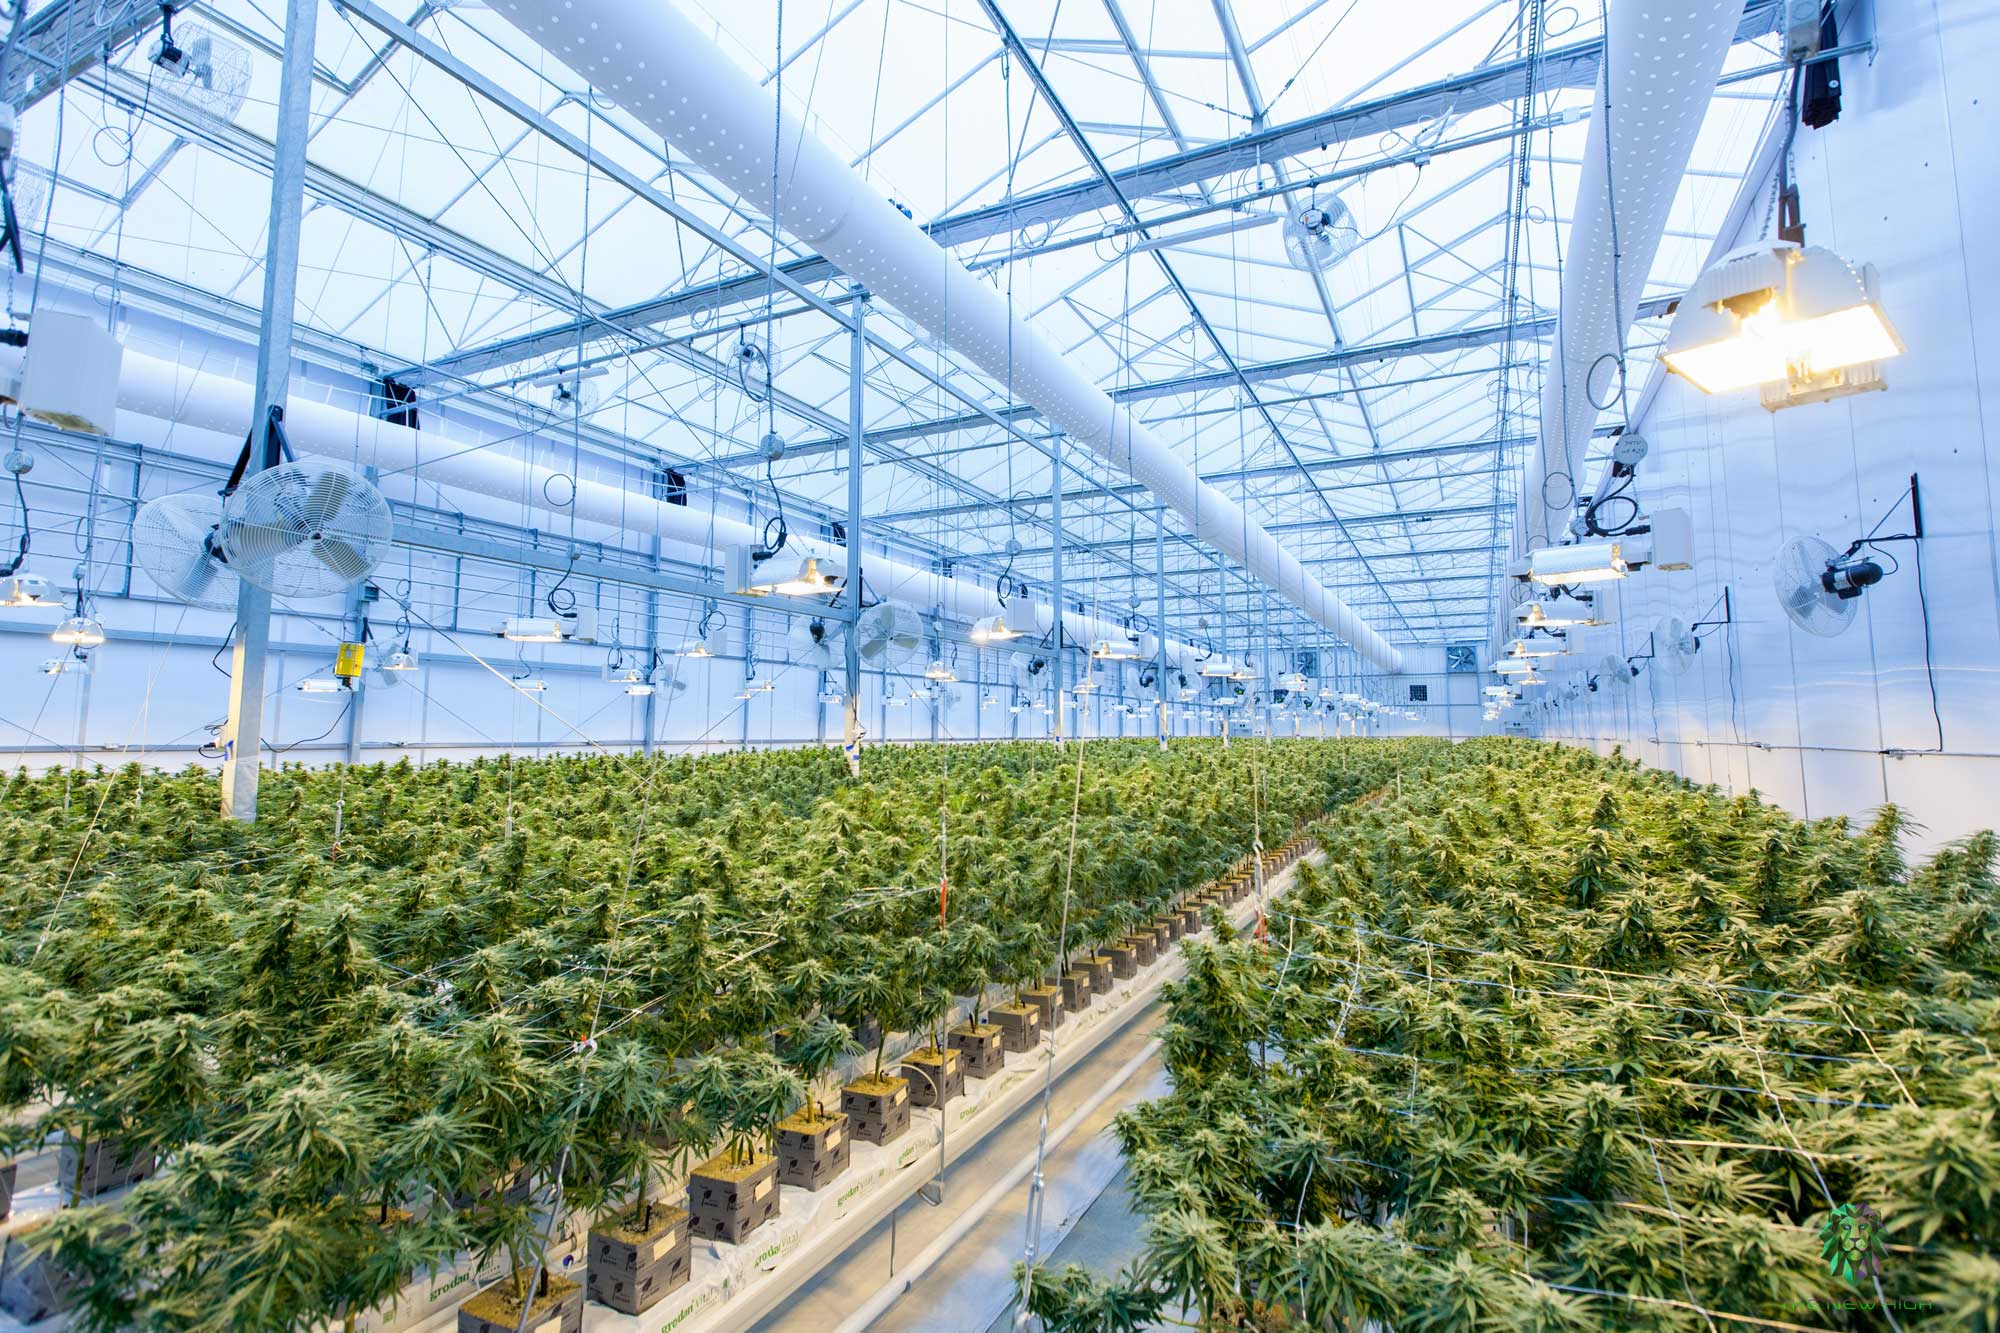 High-tech Horticulture: The impact of renewable energy on the cannabis industry